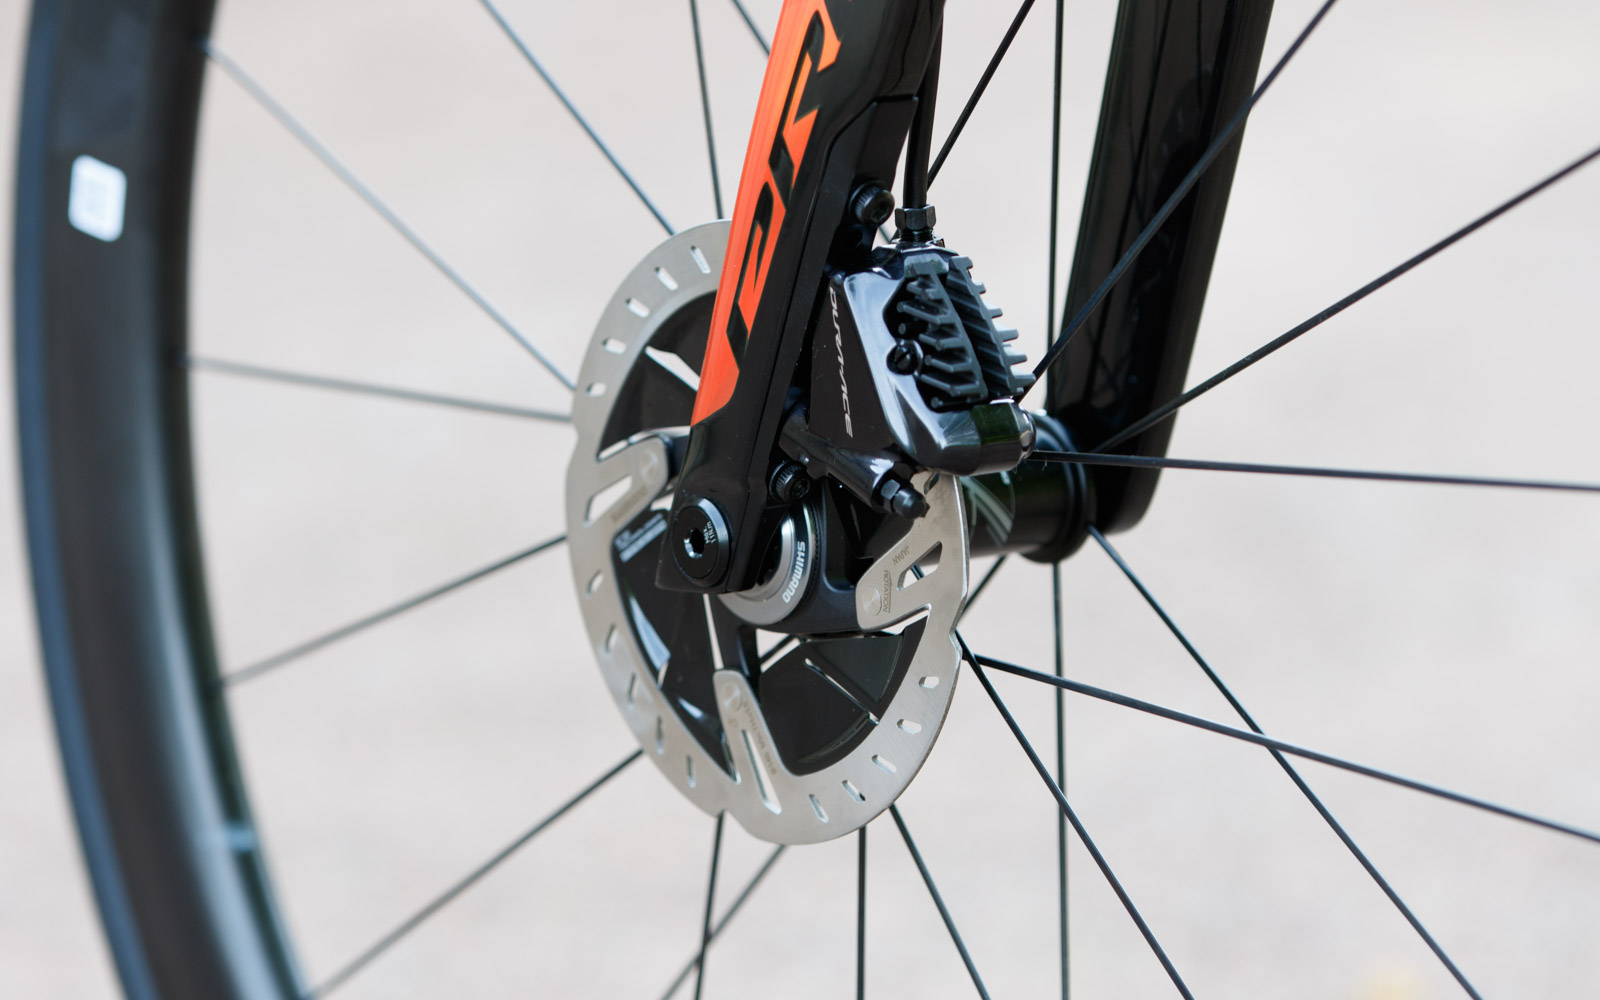 giant propel and shimano dura-ace disc brake